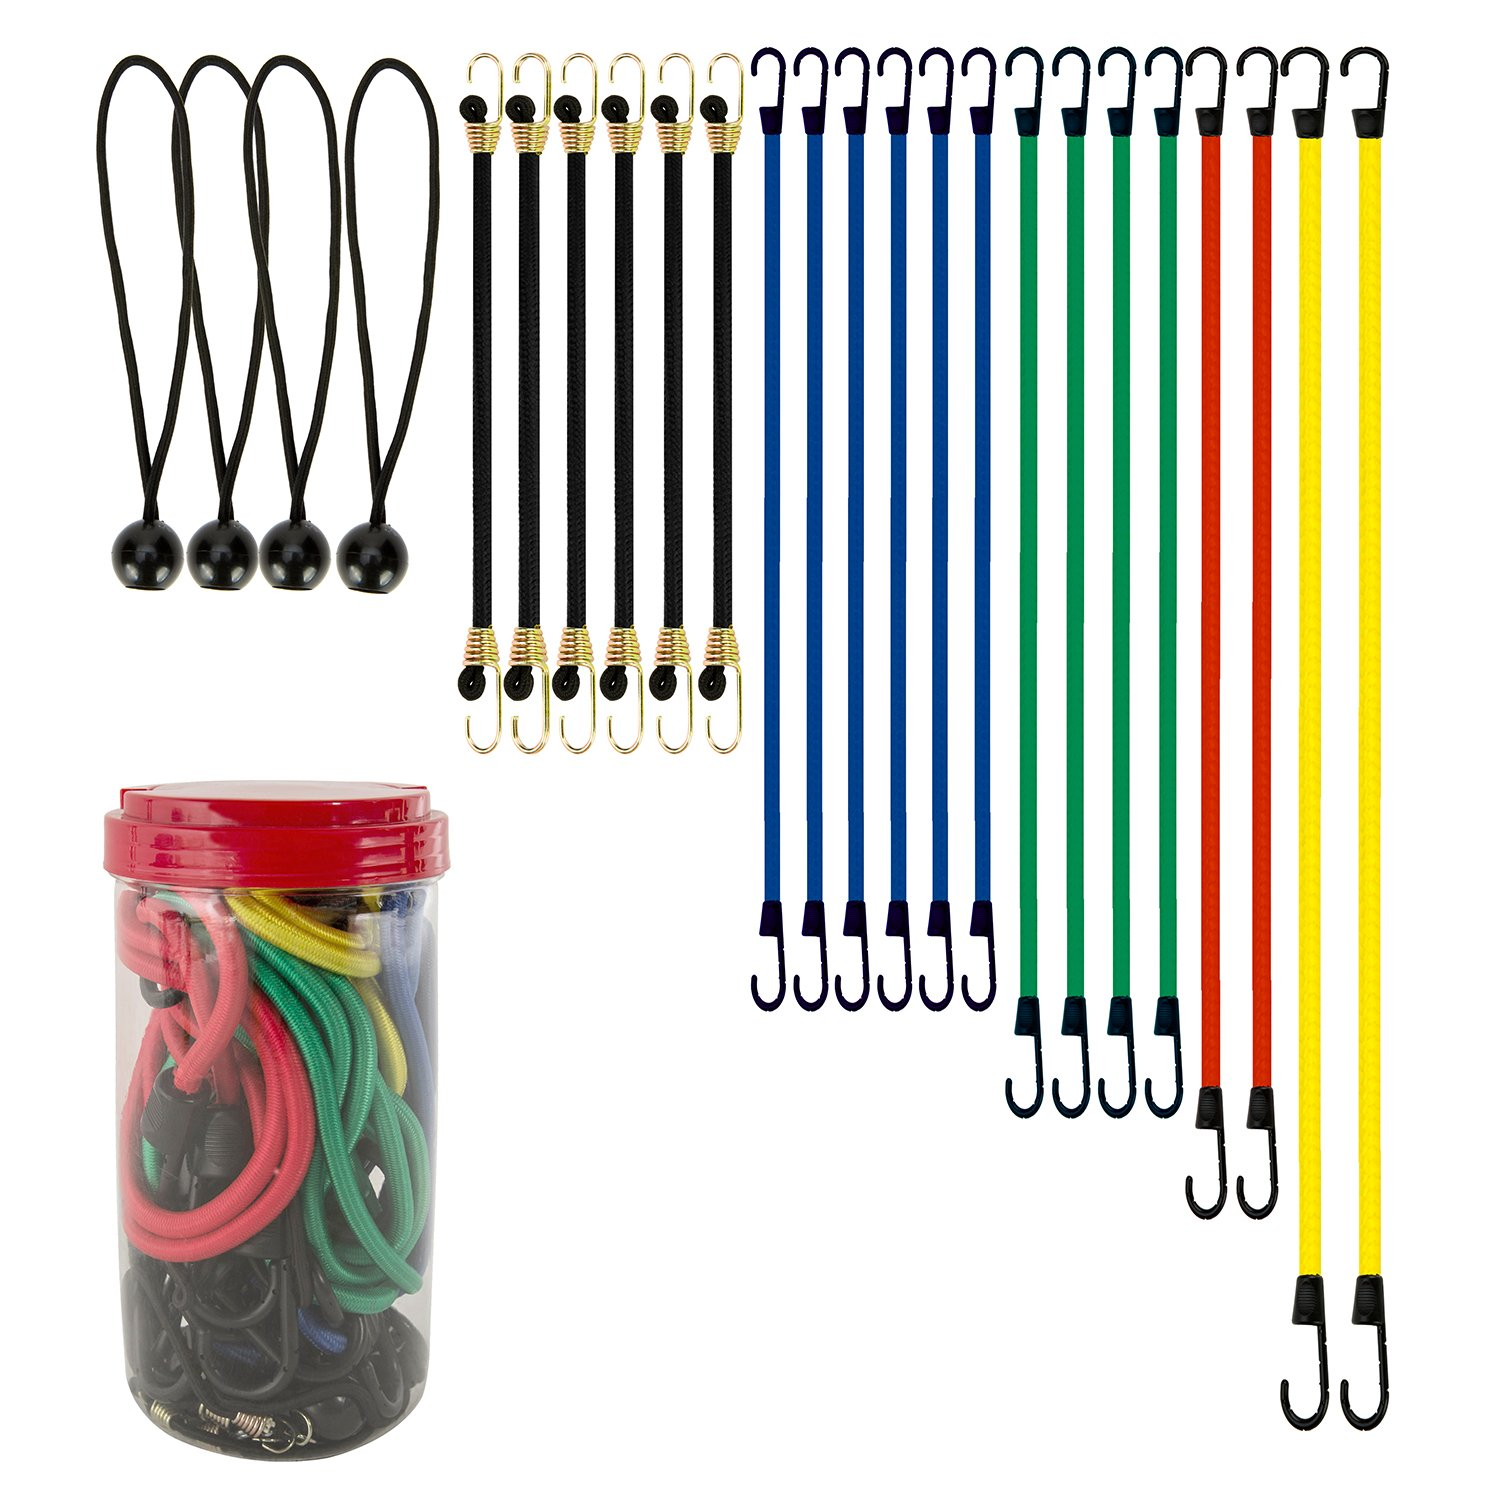 616a7c88c269 Best Choice 24-Piece Premium Bungee Cord Assortment in Storage Jar -  Includes 10""